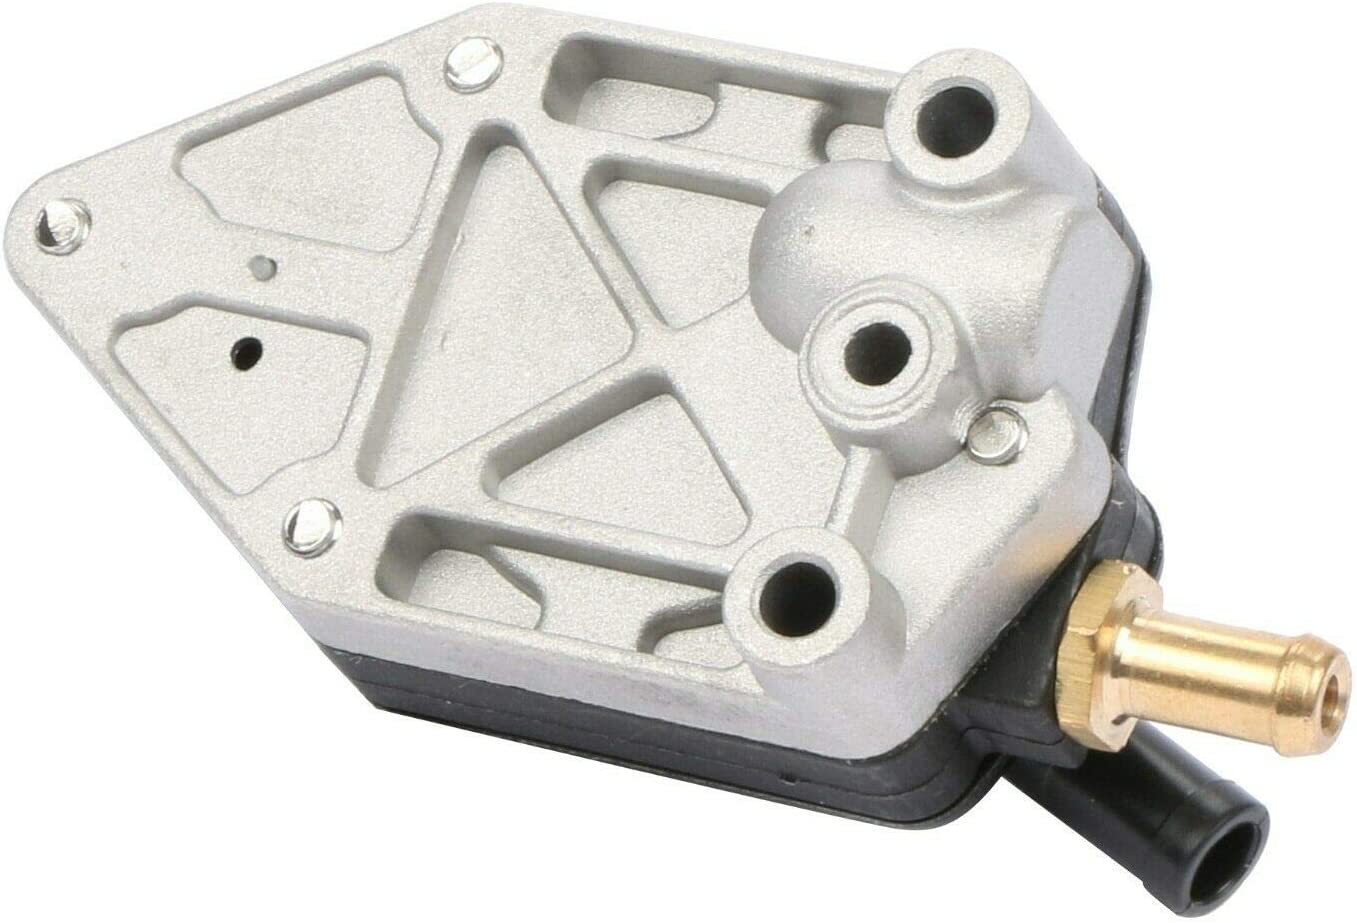 438556 Fuel Pump for Johnson//Evinrude 20-140HP Replaces 438556 388268 388268 385781 with Gasket